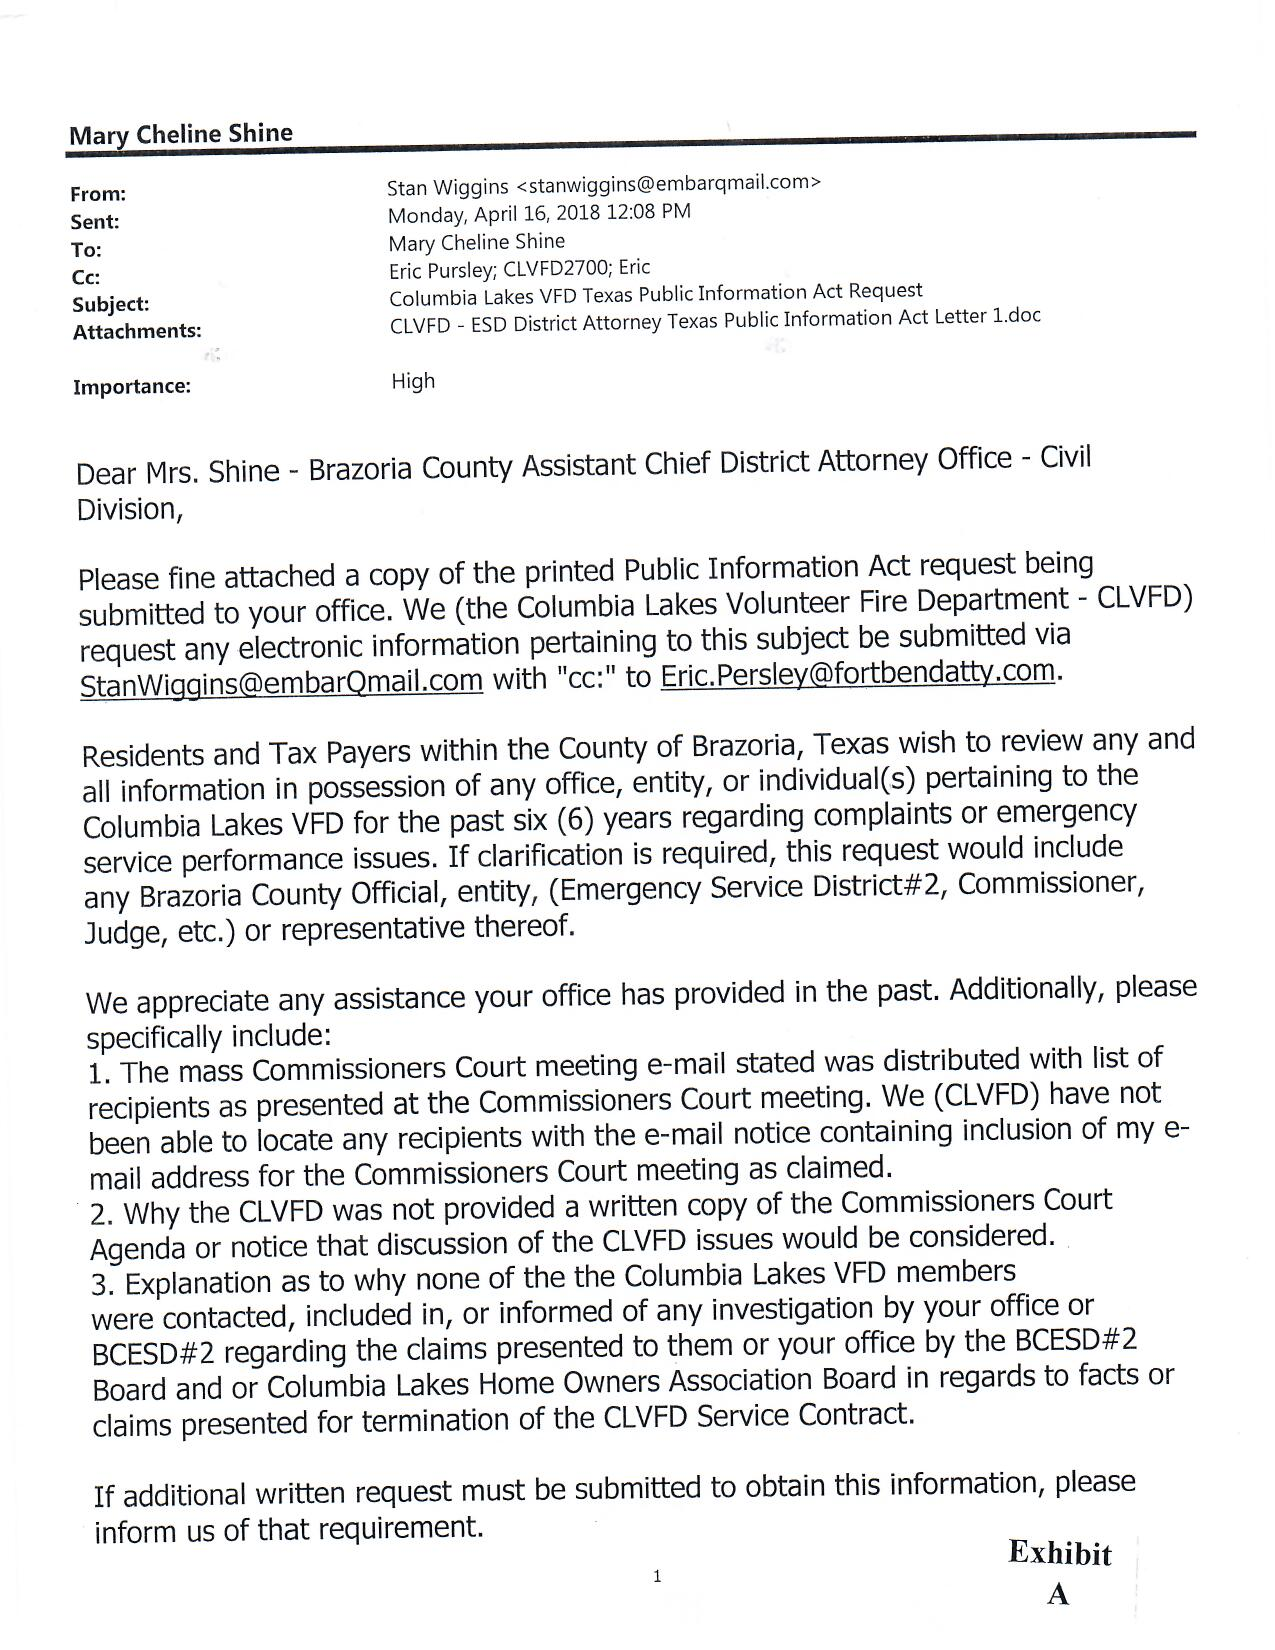 CLVFD - DA Civil PIA Letter ESD Issues pg1.jpg